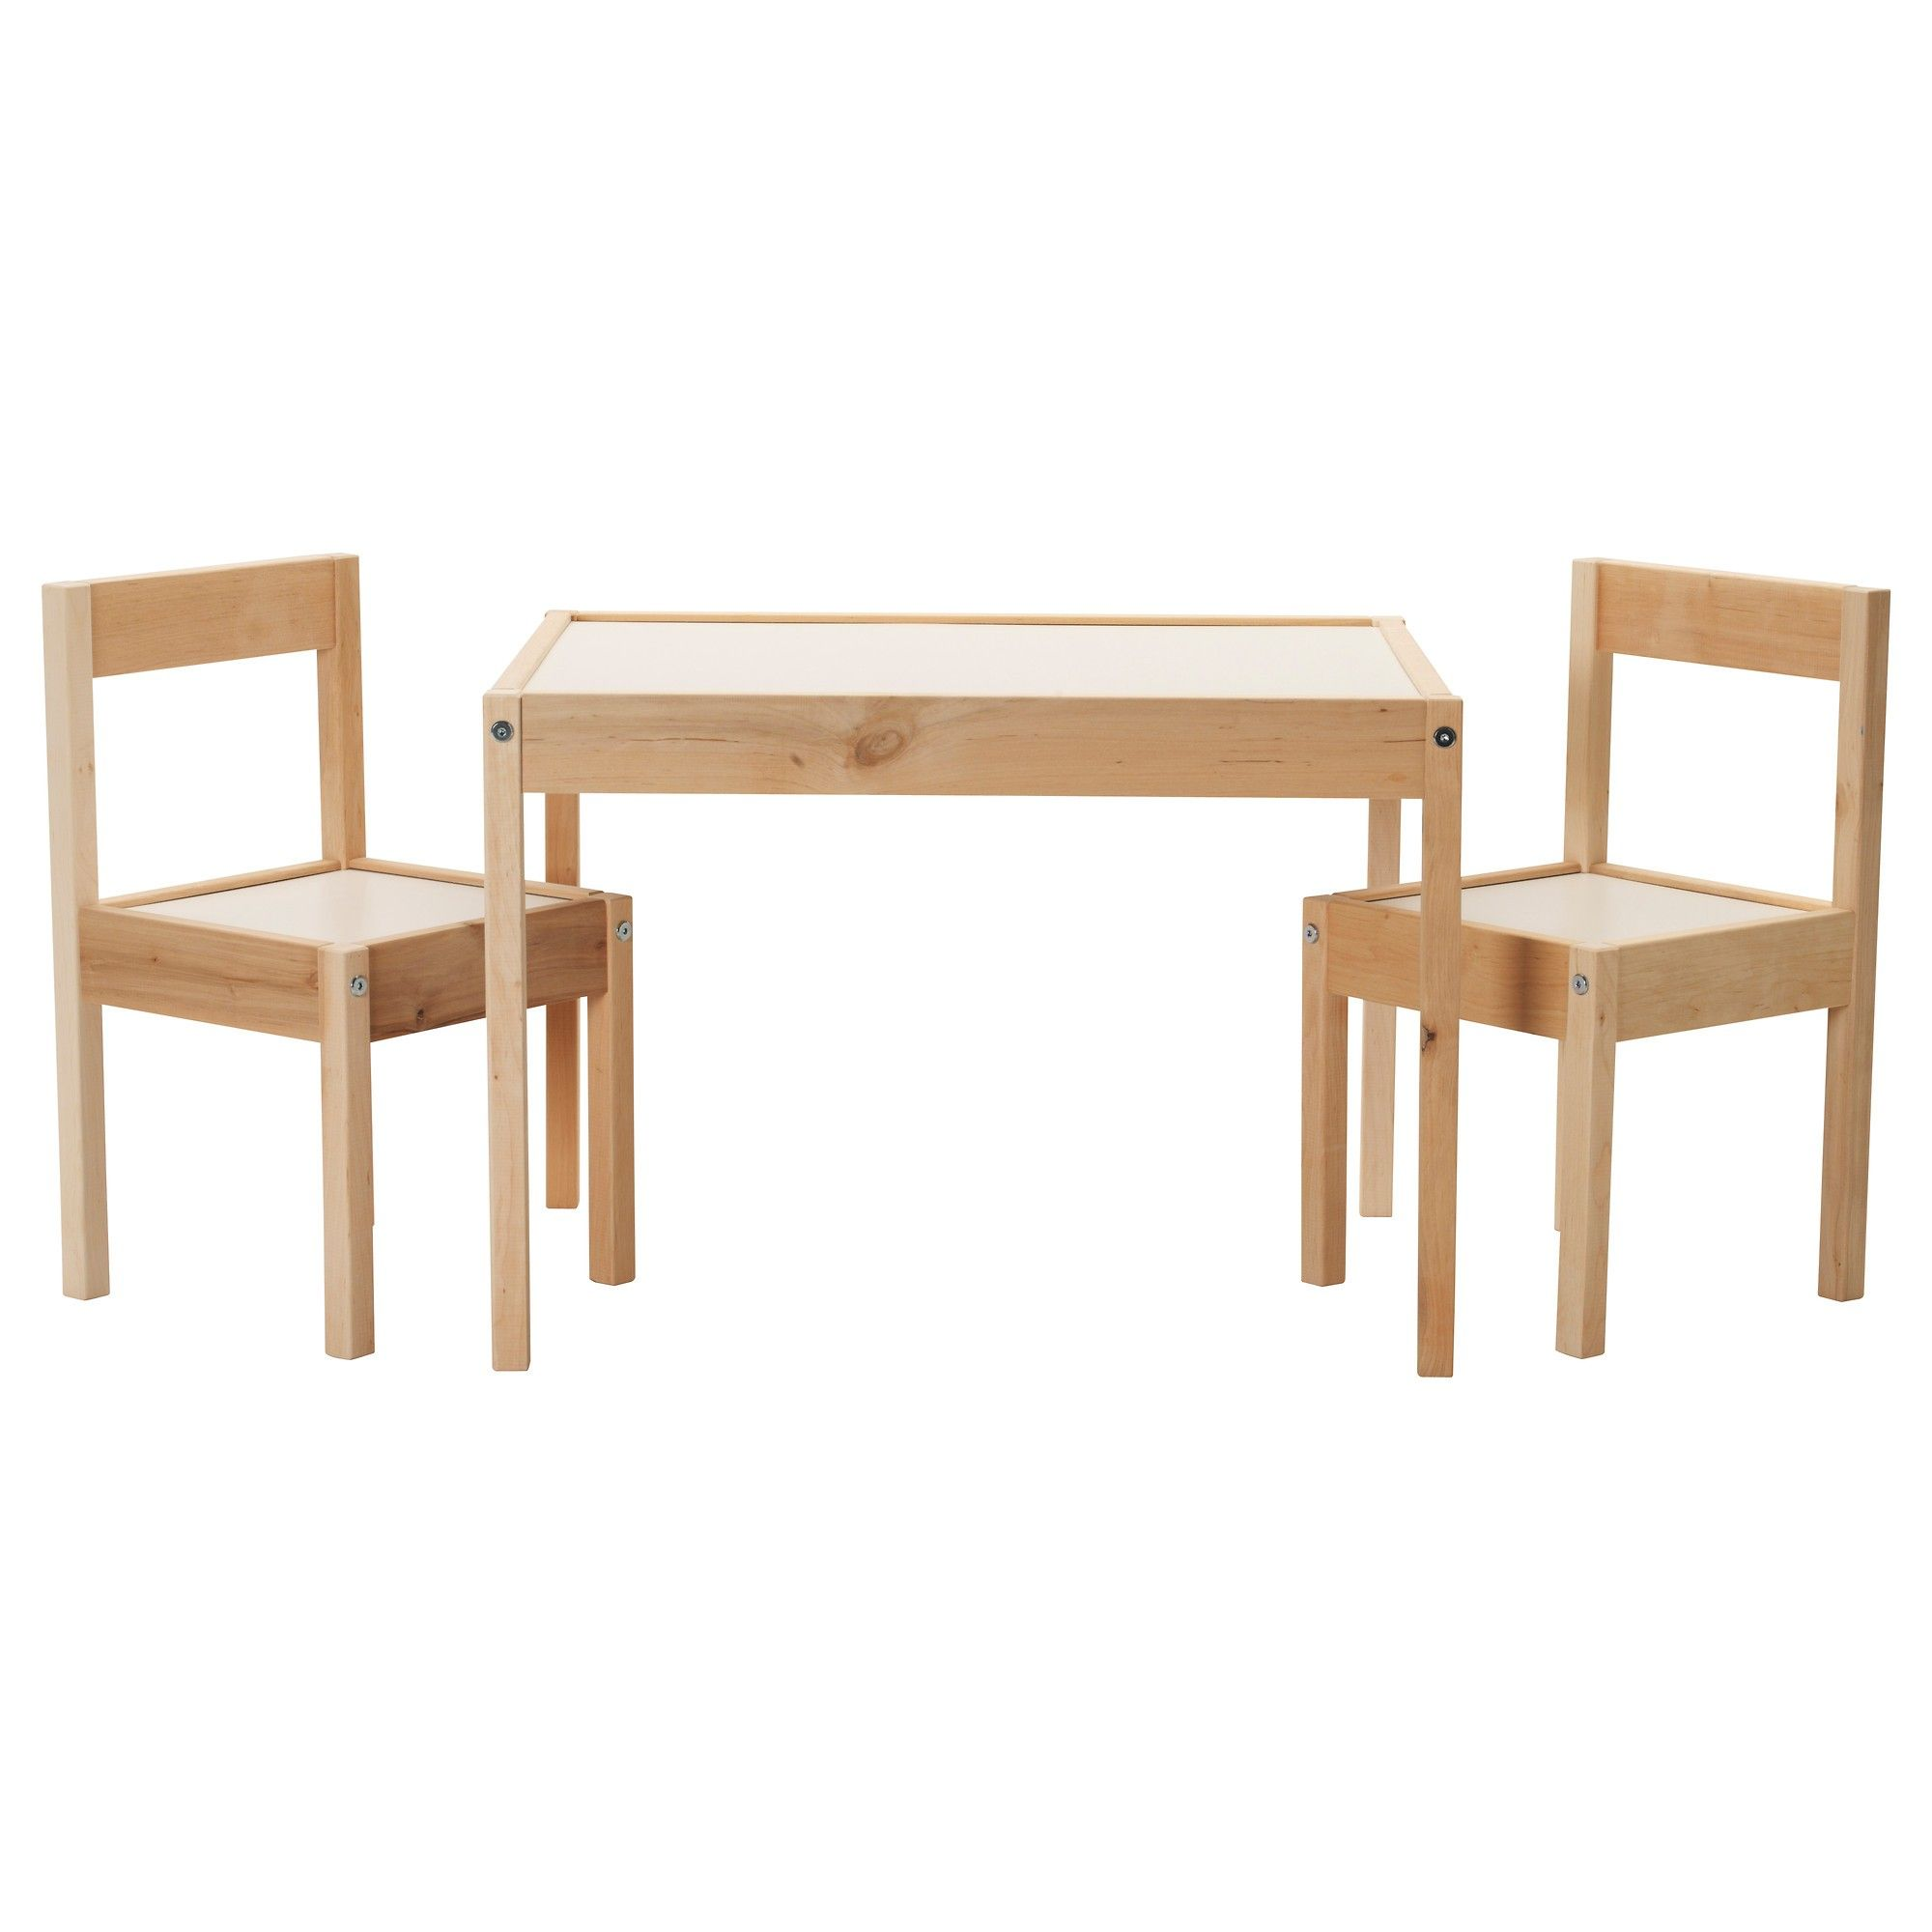 Superieur Kids Room Furniture Rectangle Oak Wood Table And Chairs With White Laminate  Top Surface And Seat